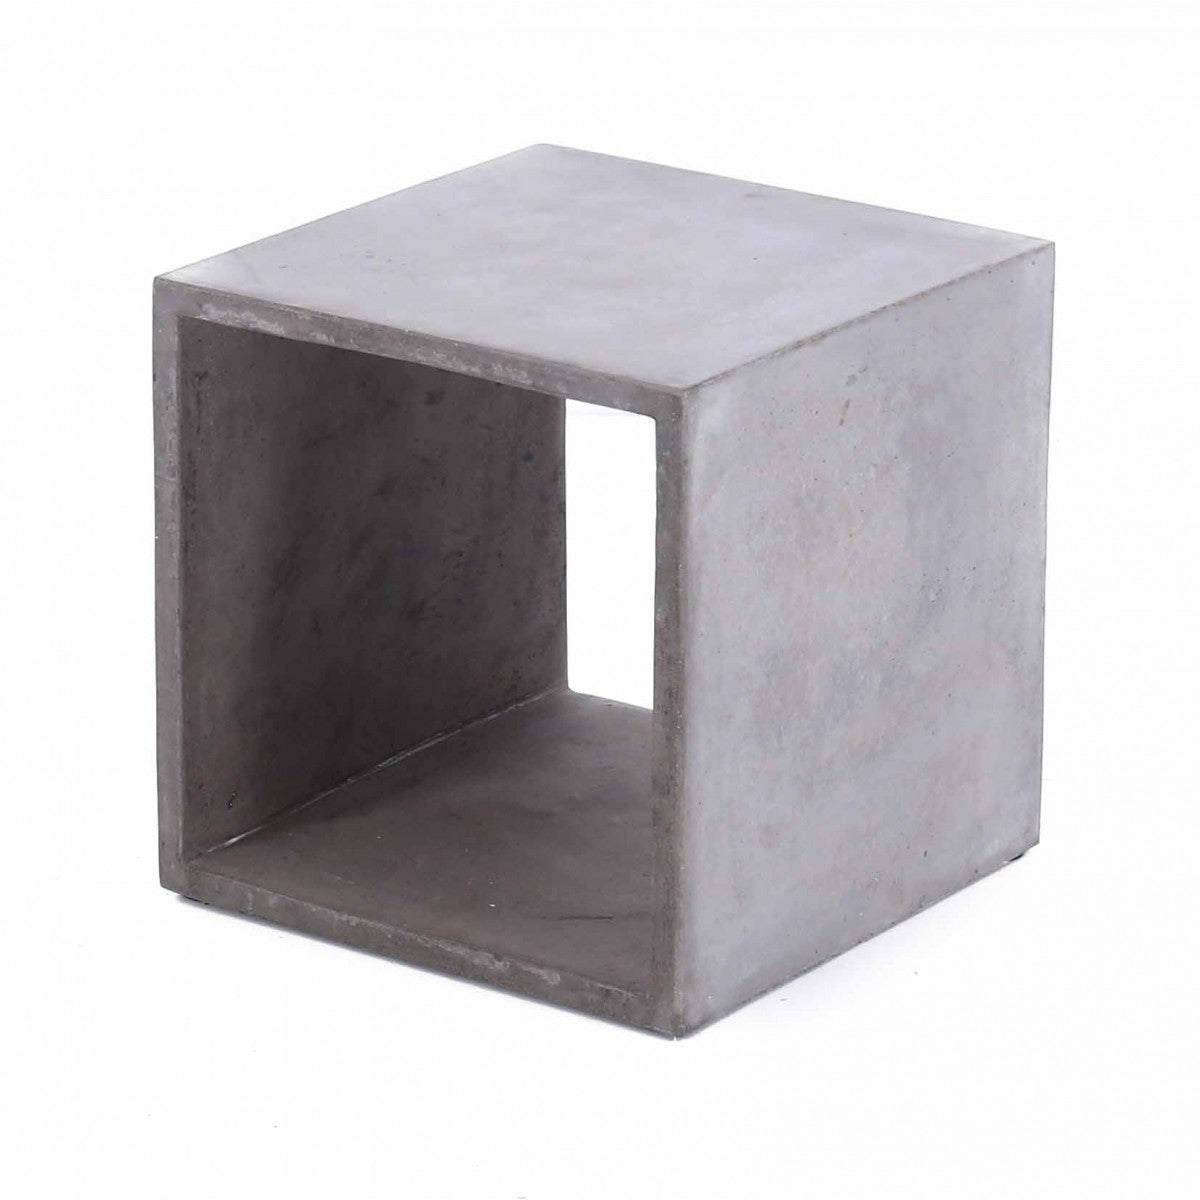 Furniture maison durable vega concrete cube - Cube de rangement ...